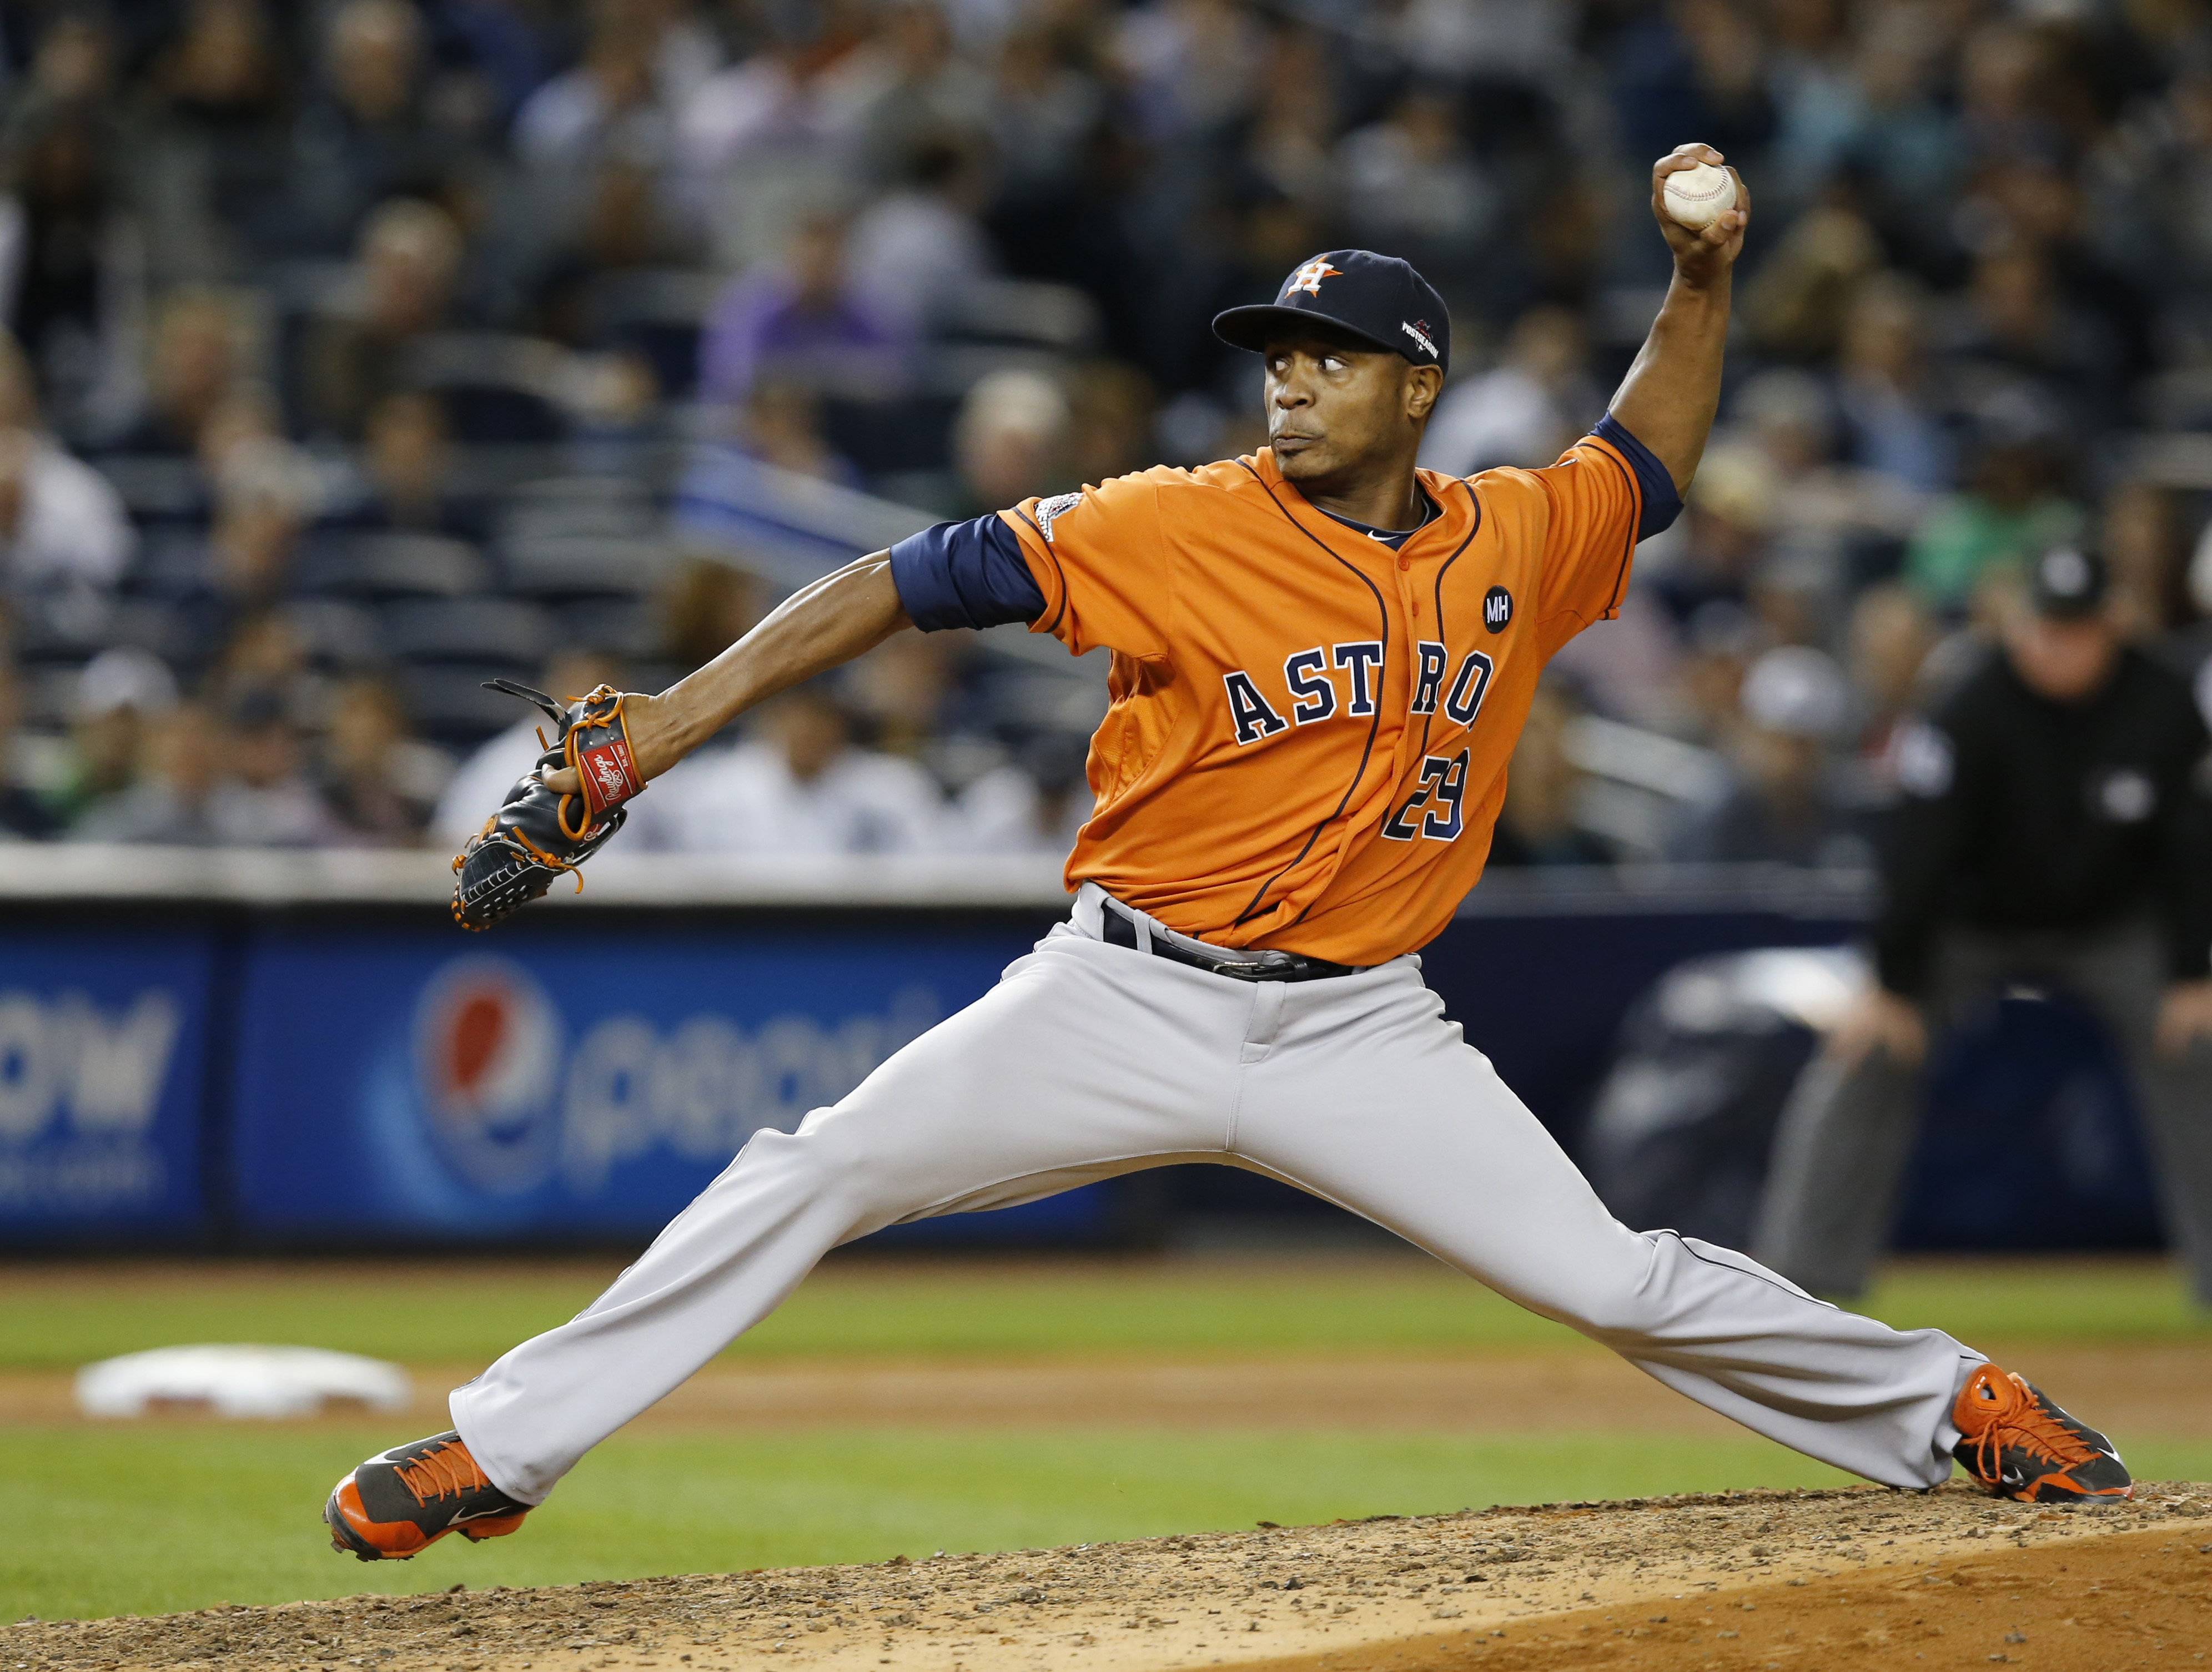 FILE - In this Oct. 6, 2015 file photo, Houston Astros relief pitcher Tony Sipp throws during the seventh inning of the American League wild card baseball game against the New York Yankees at Yankee Stadium in New York. A person familiar with the negotiat